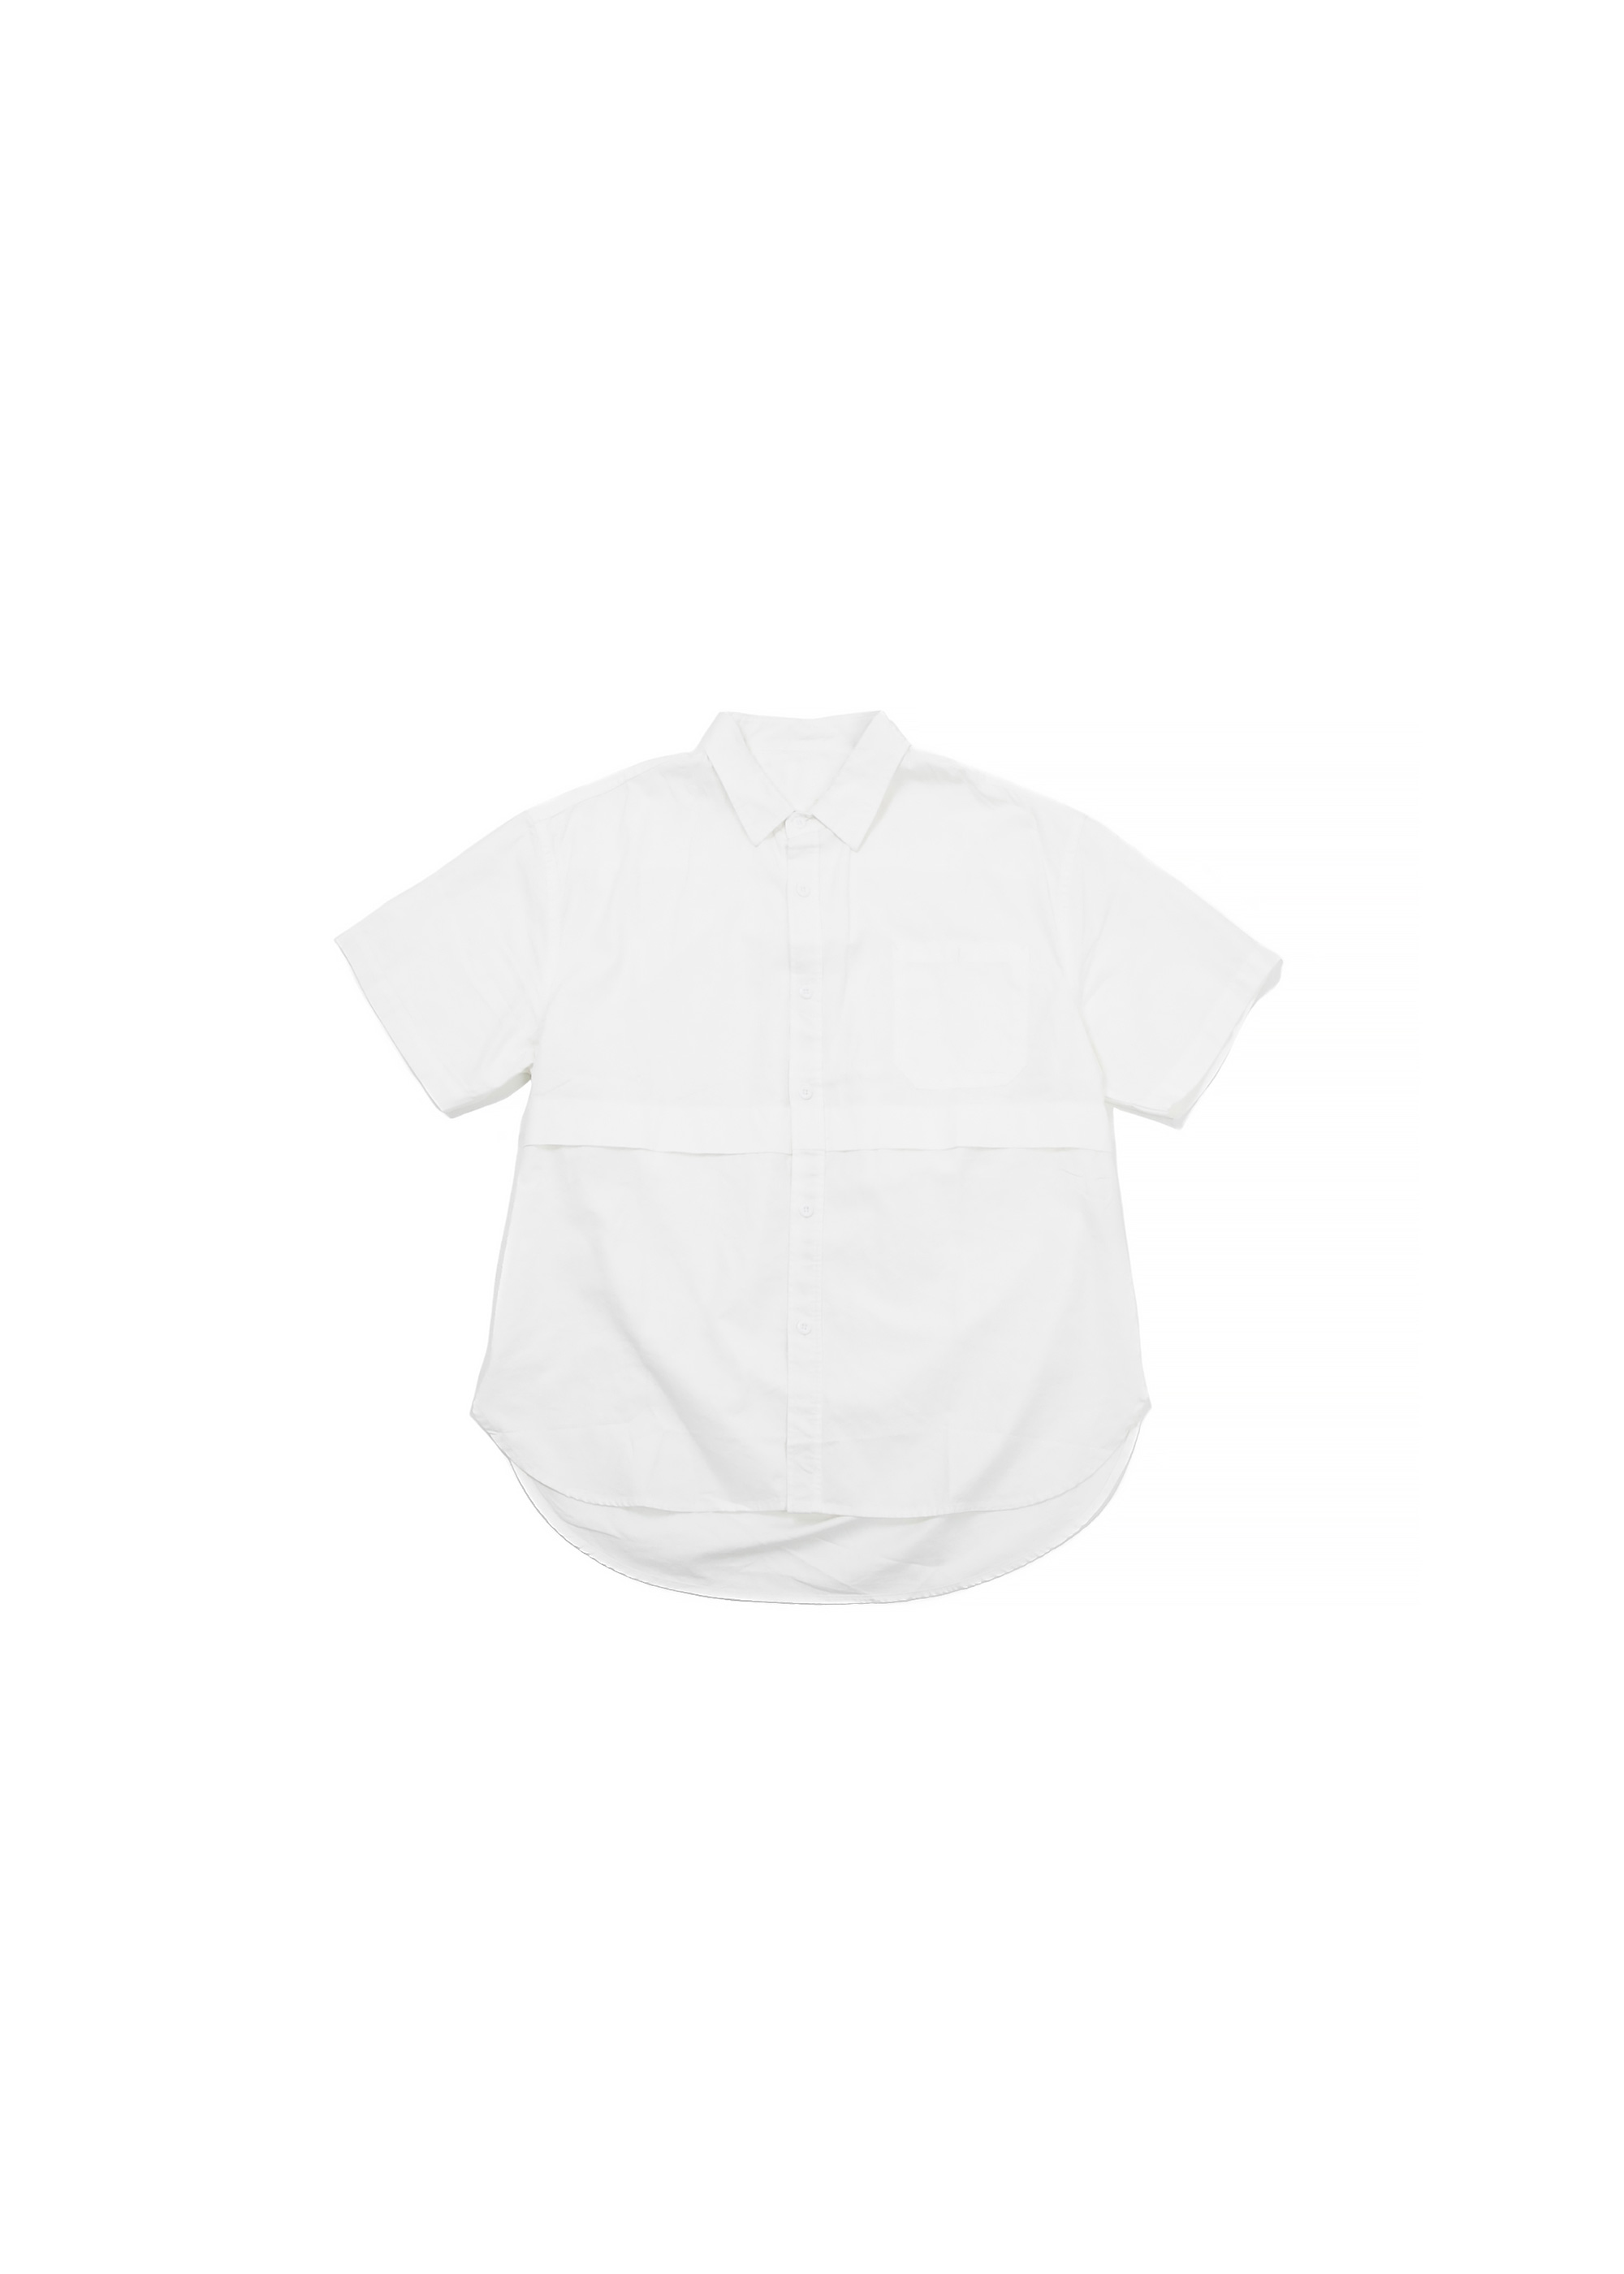 Half Basic Line Shirts - White